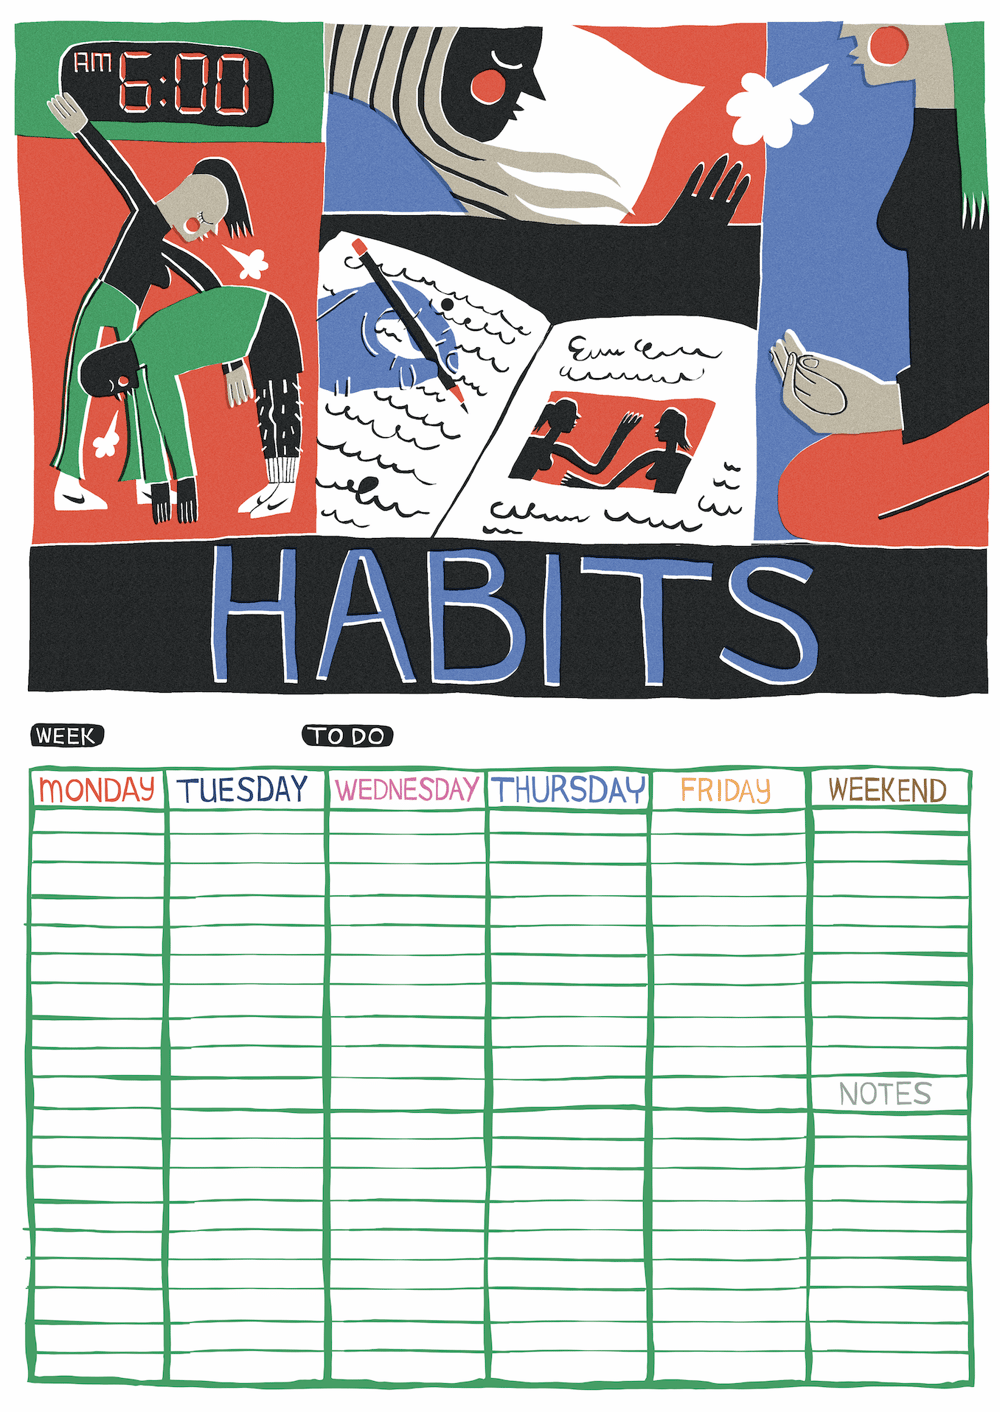 Calendar of Mental Health - image 8 - student project